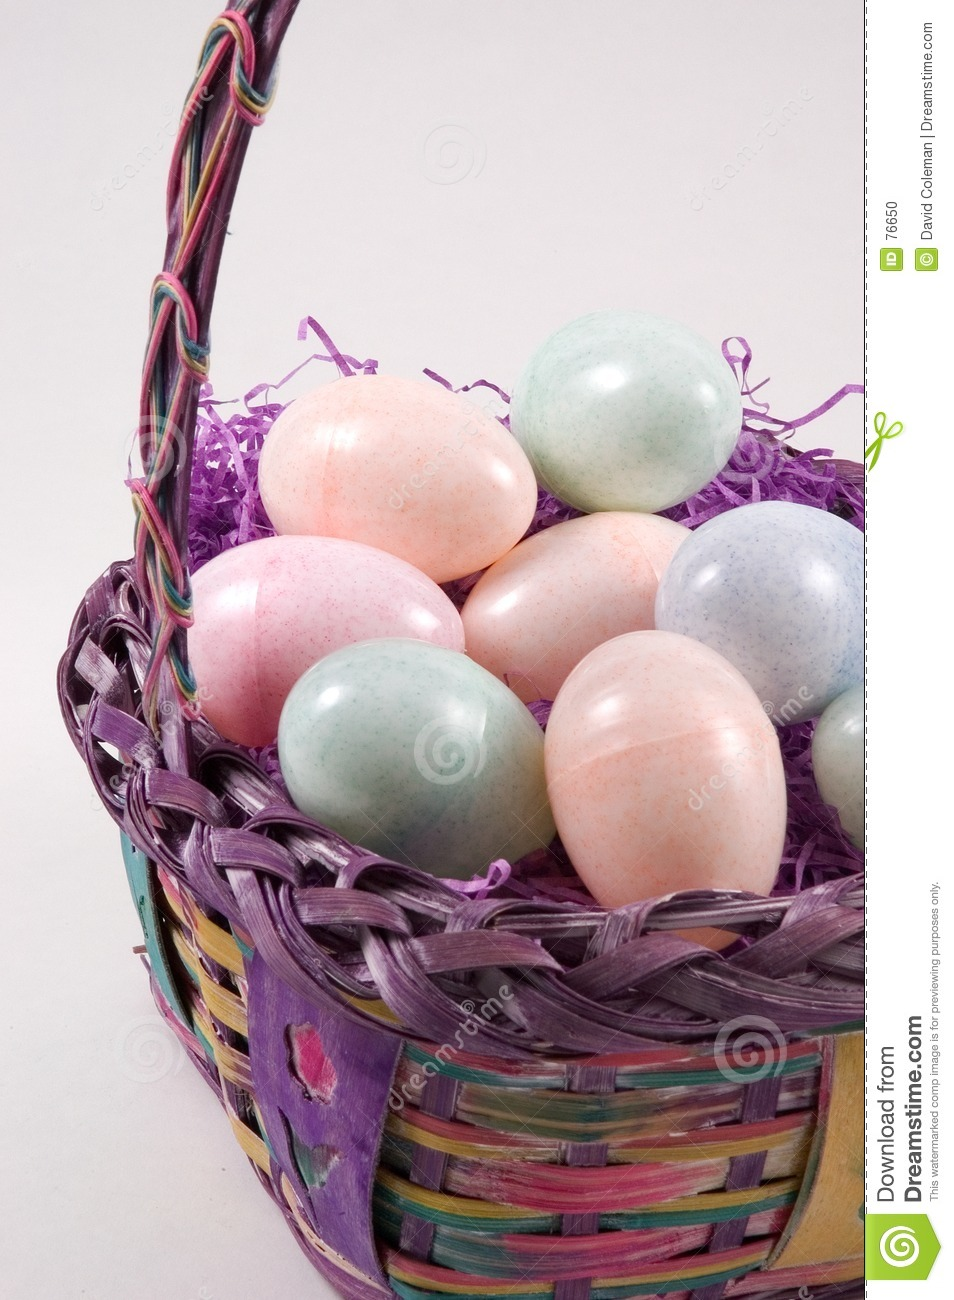 Easter Basket with Easter Eggs - Verticle View